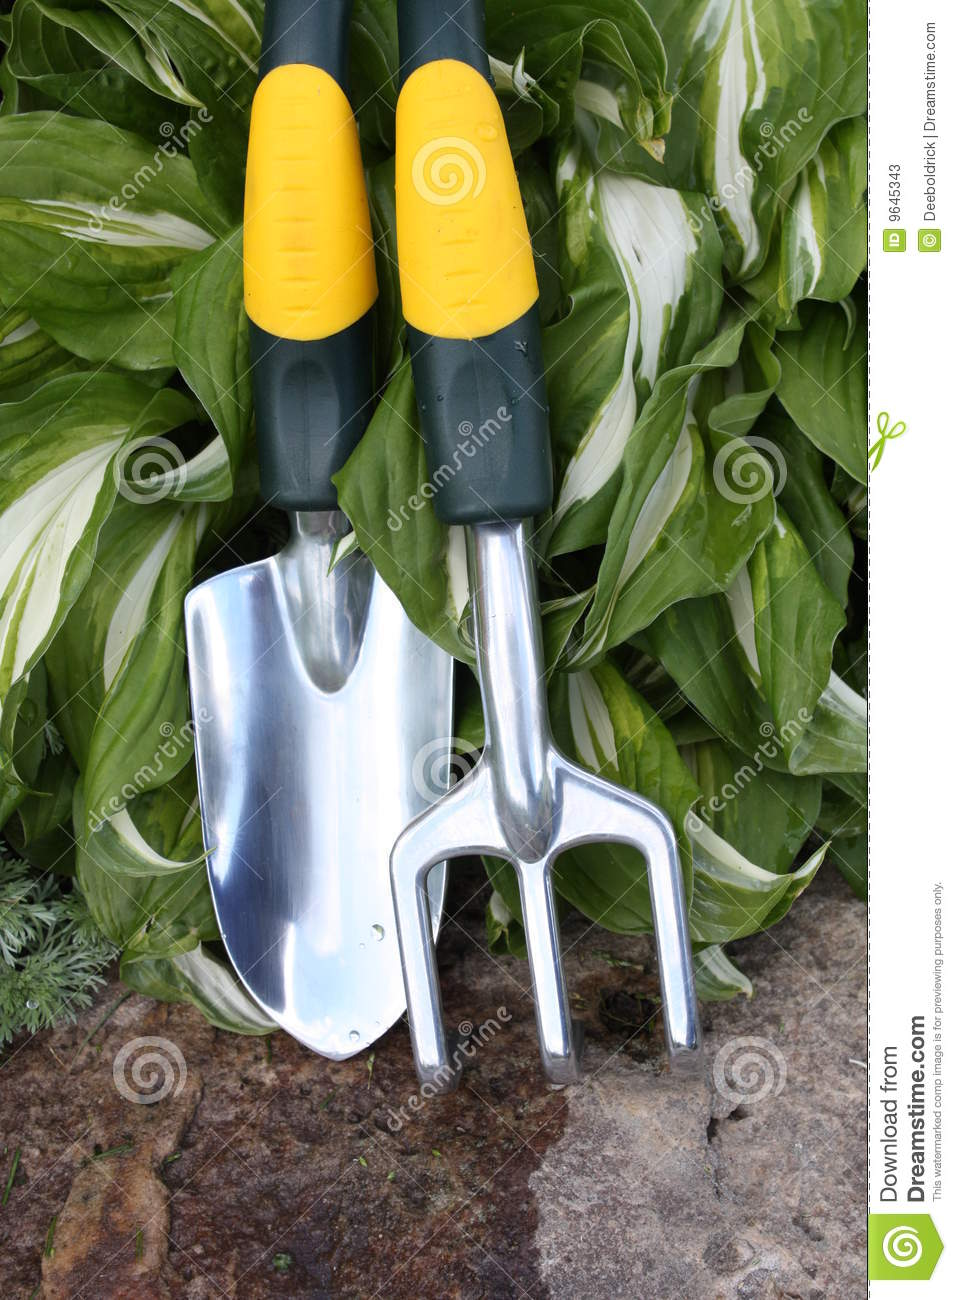 Garden tools for planting stock photos image 9645343 for Gardening tools used in planting